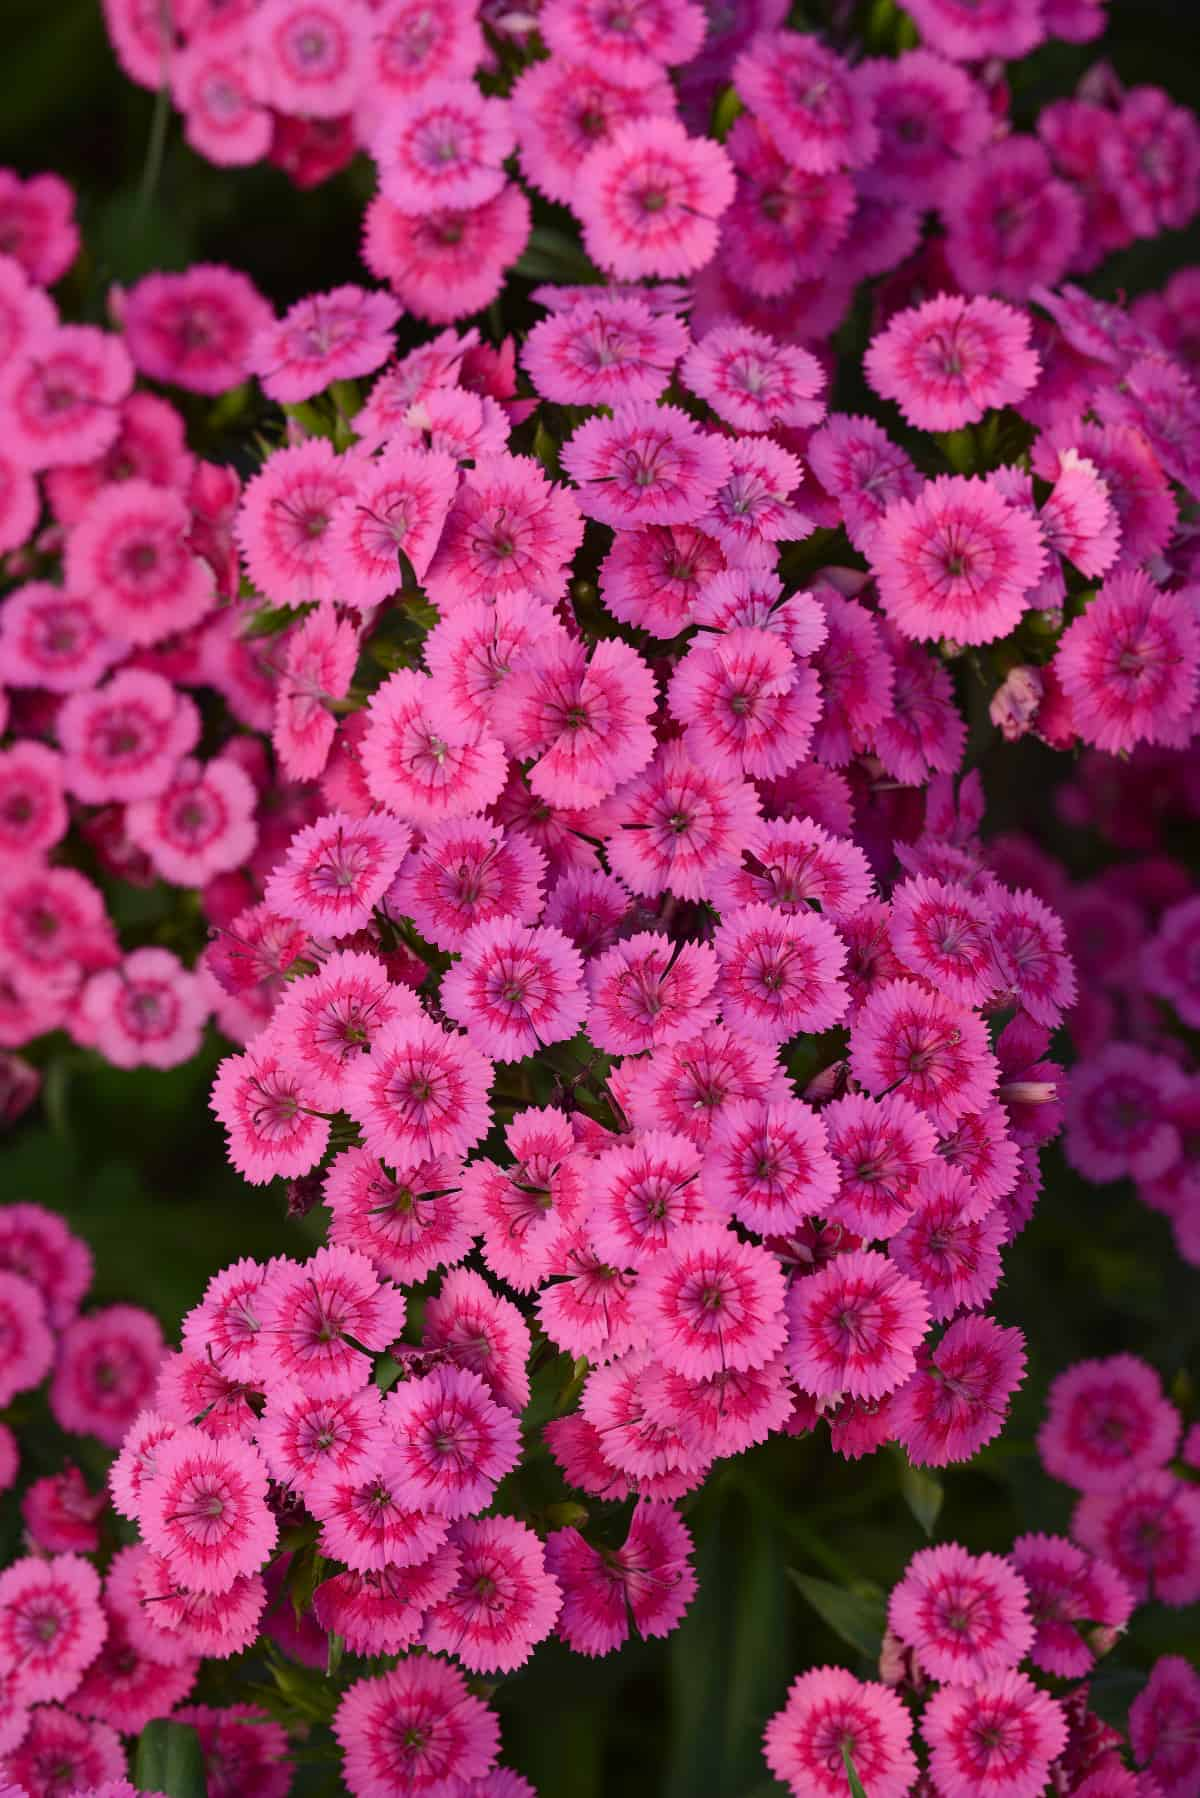 Dianthus interspecific jolt pink f1 all america selections dianthus jolt pink f1 jolt is the most heat tolerant dianthus on the market mightylinksfo